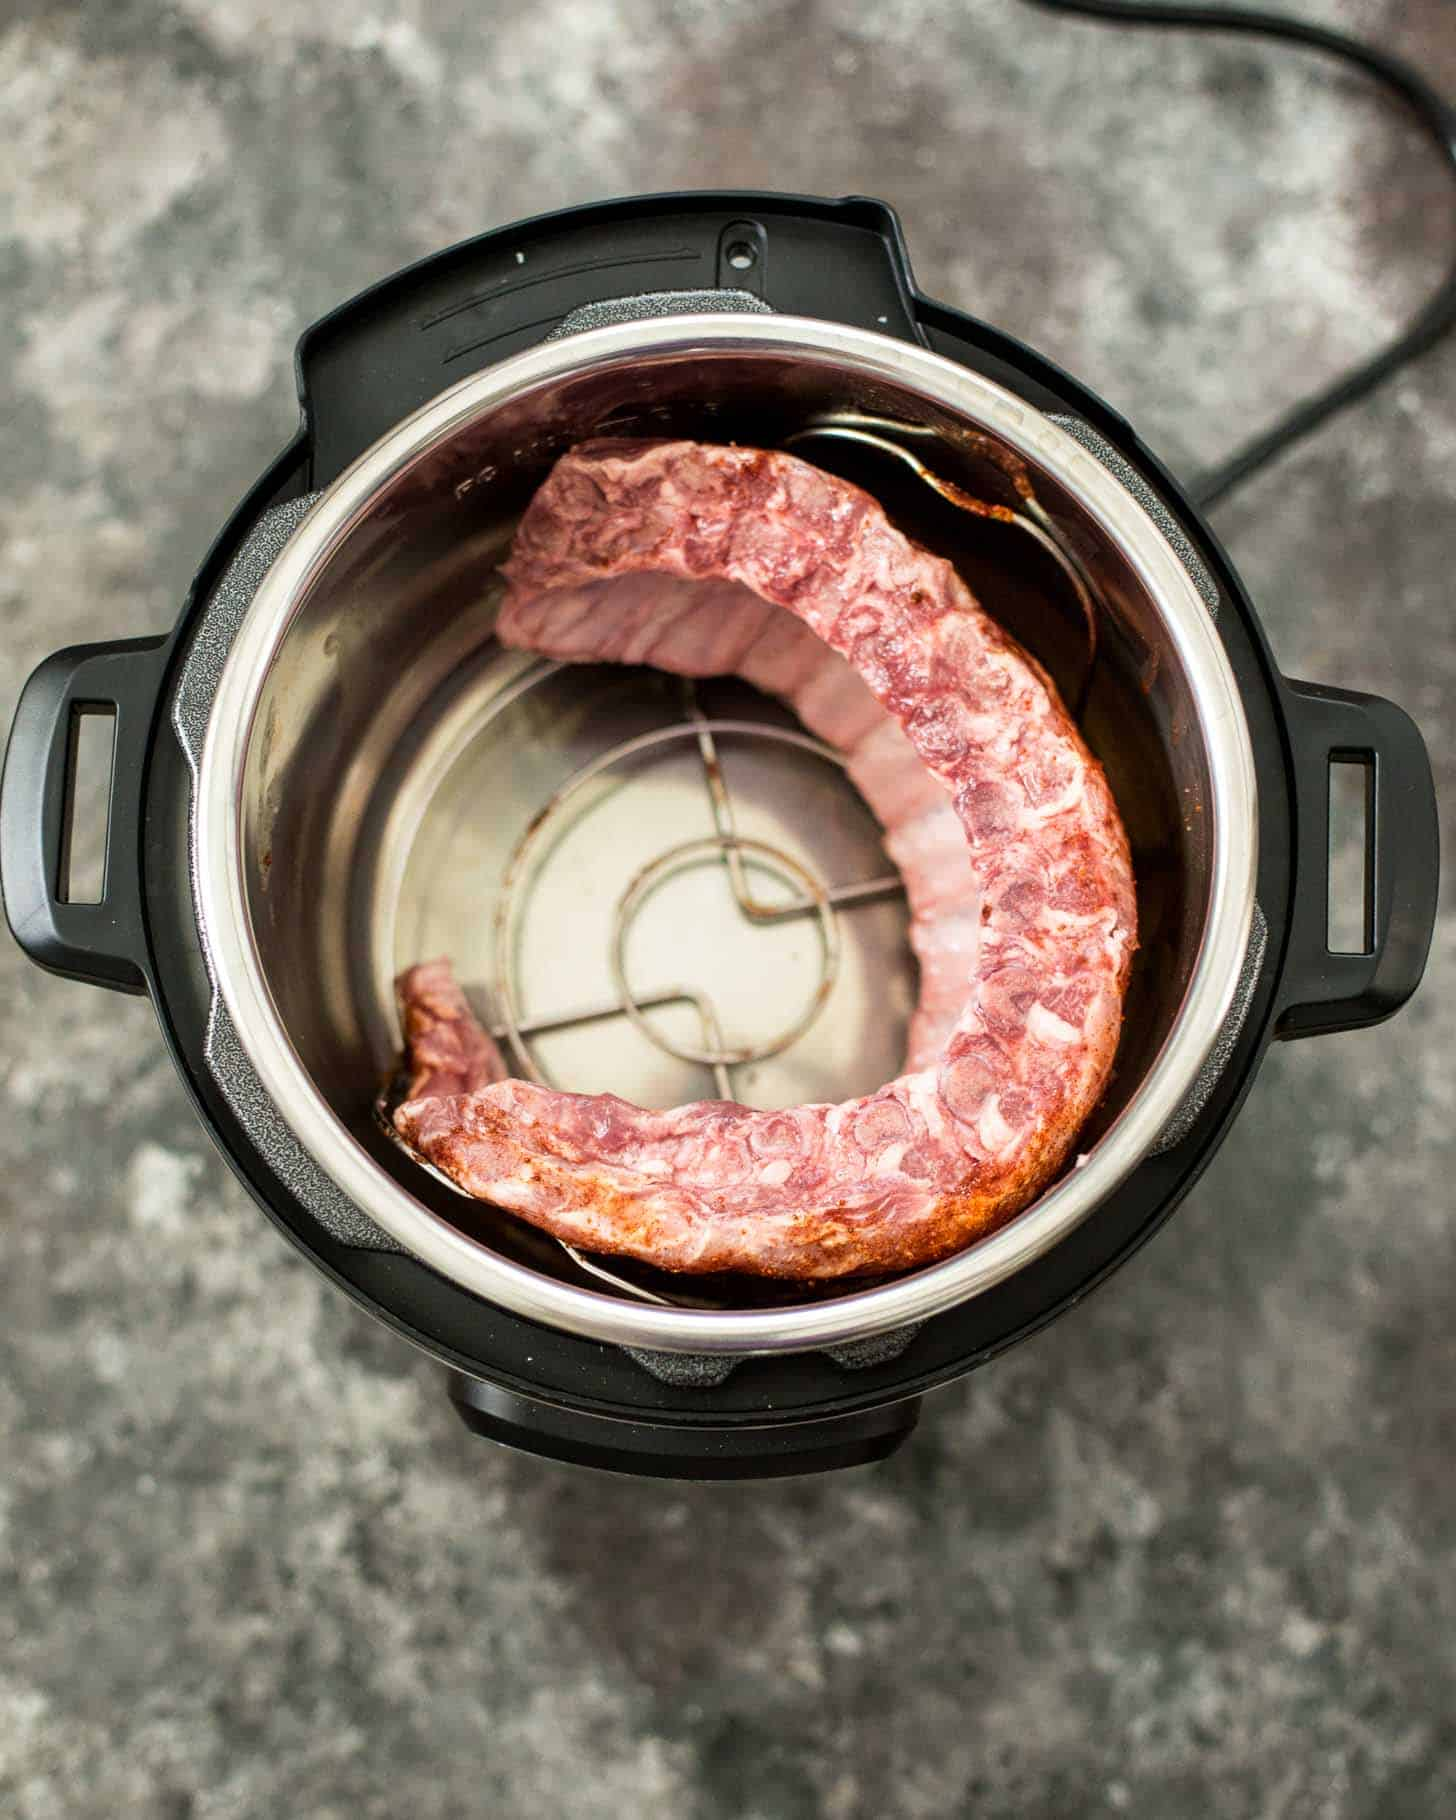 cooking ribs in the instant pot